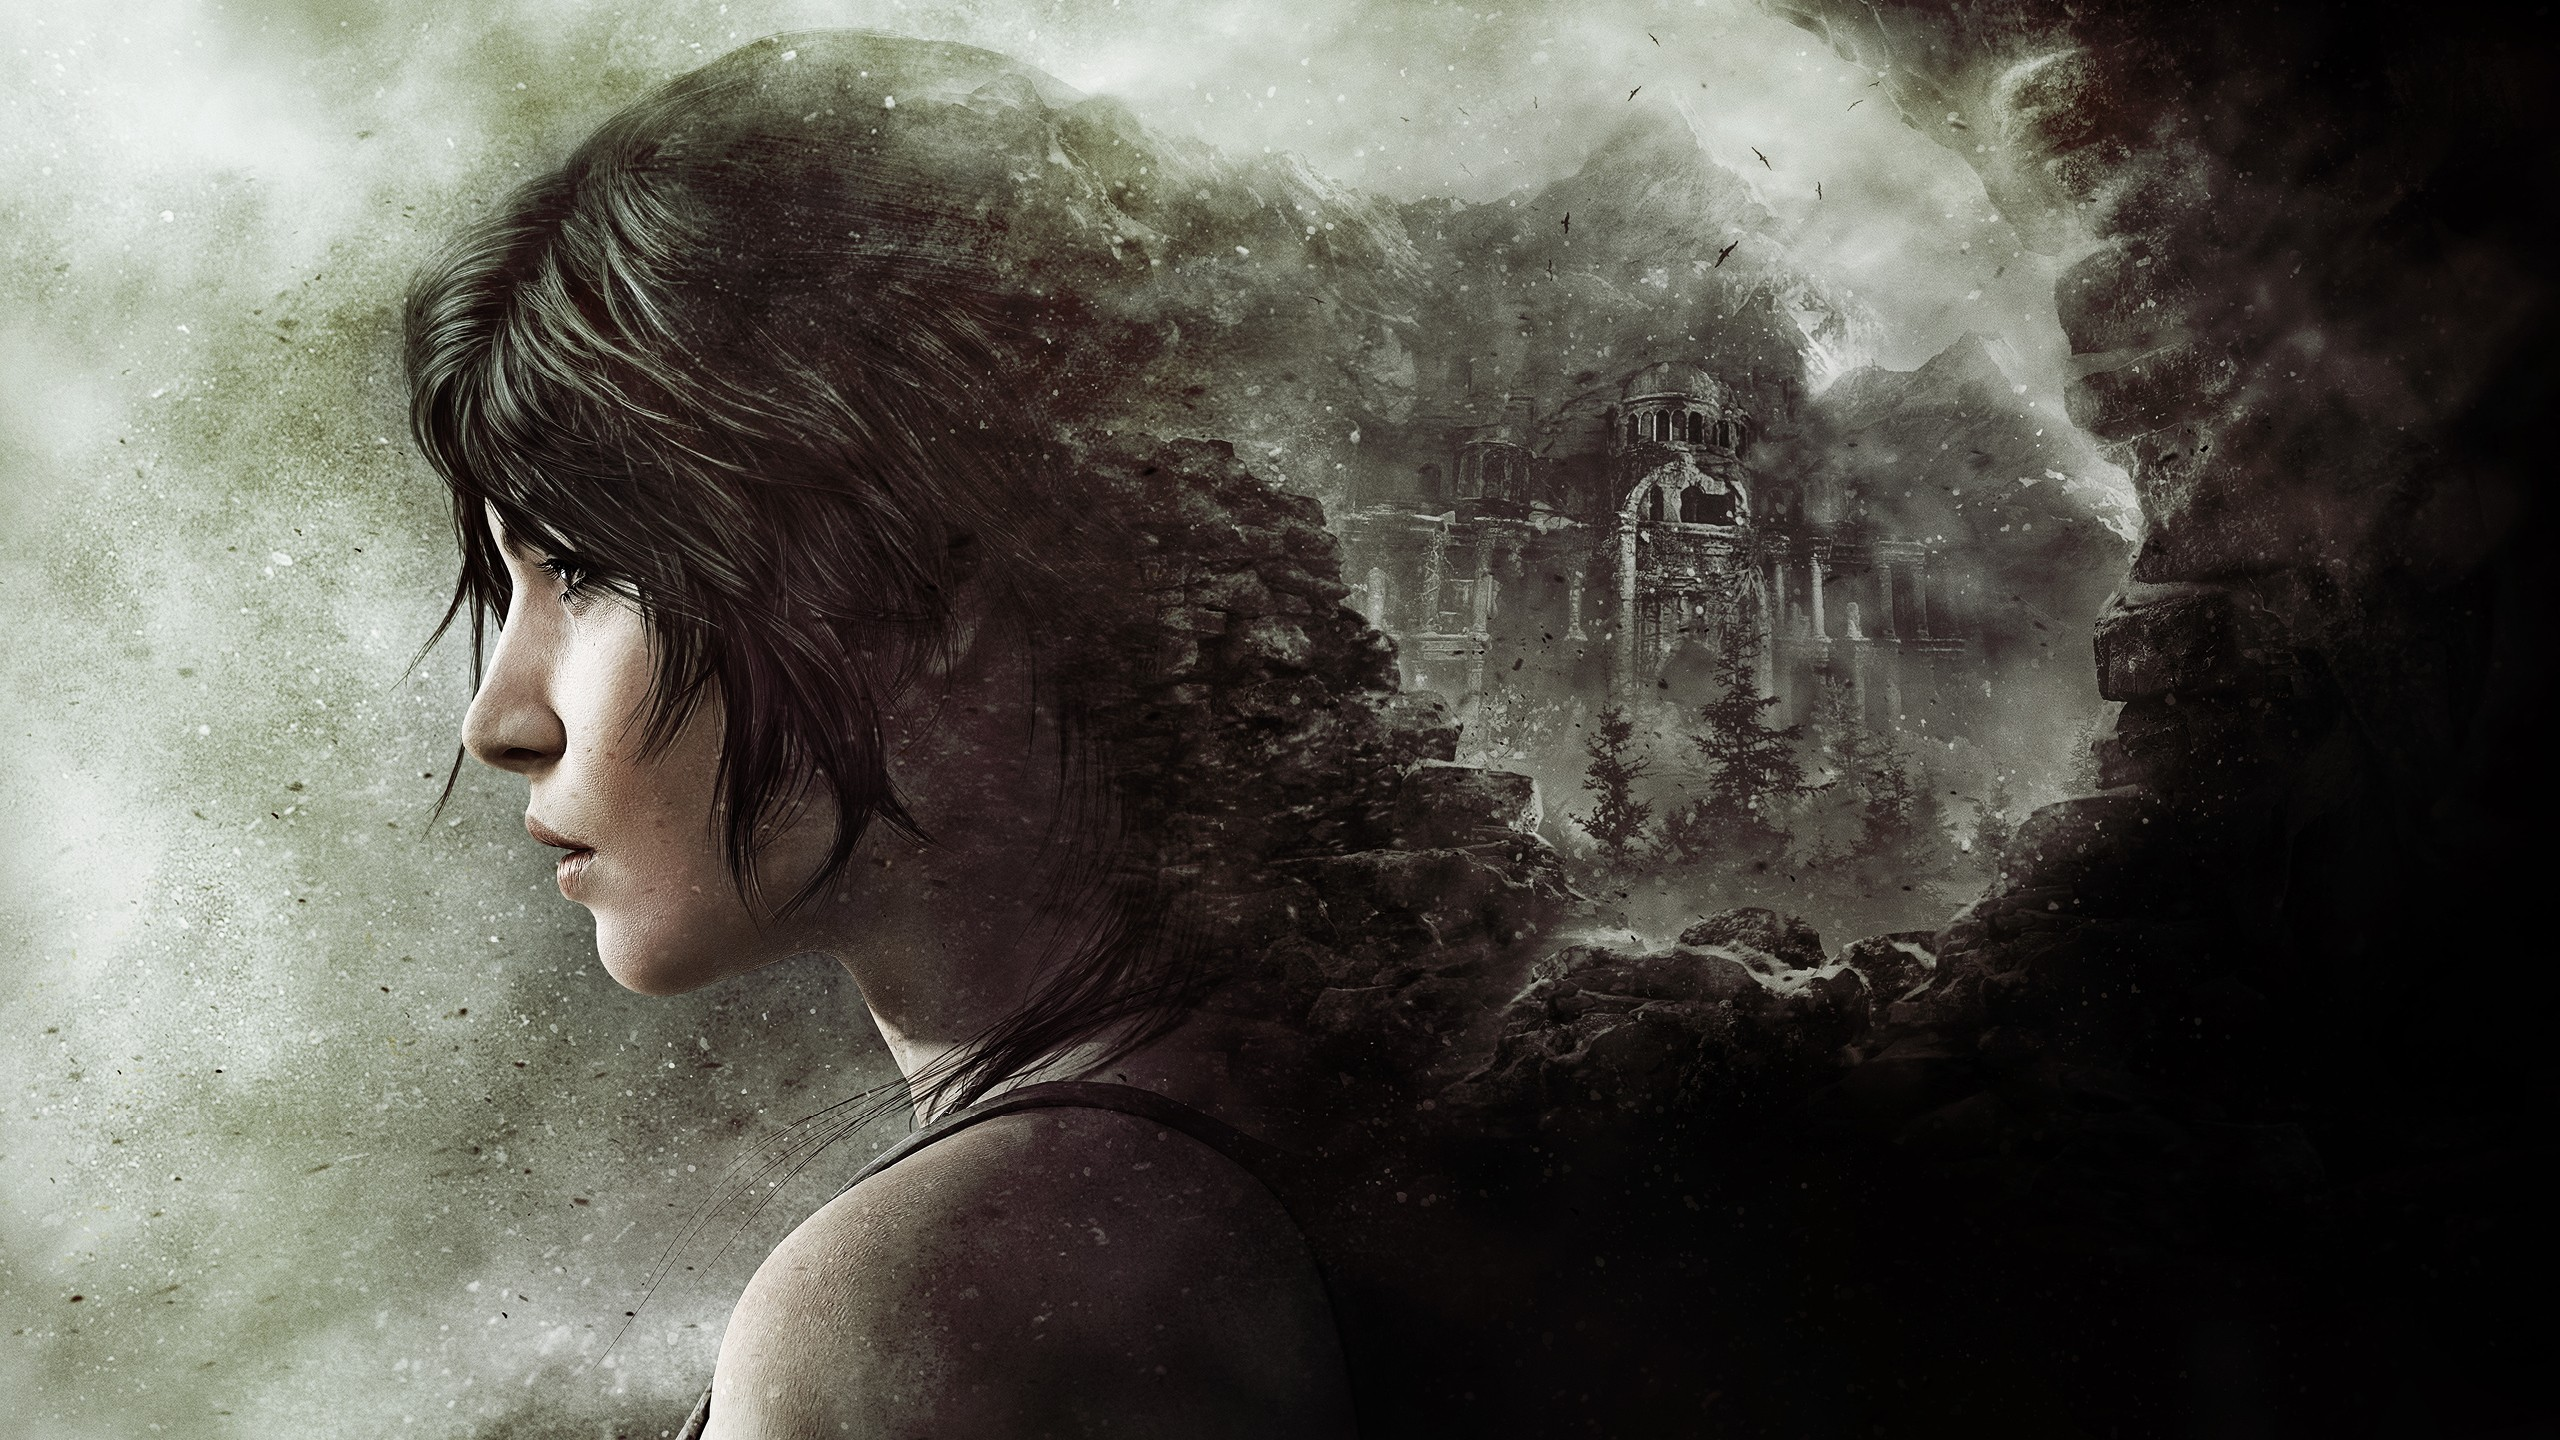 Rise Of The Tomb Raider Wallpaper Download Free Awesome High